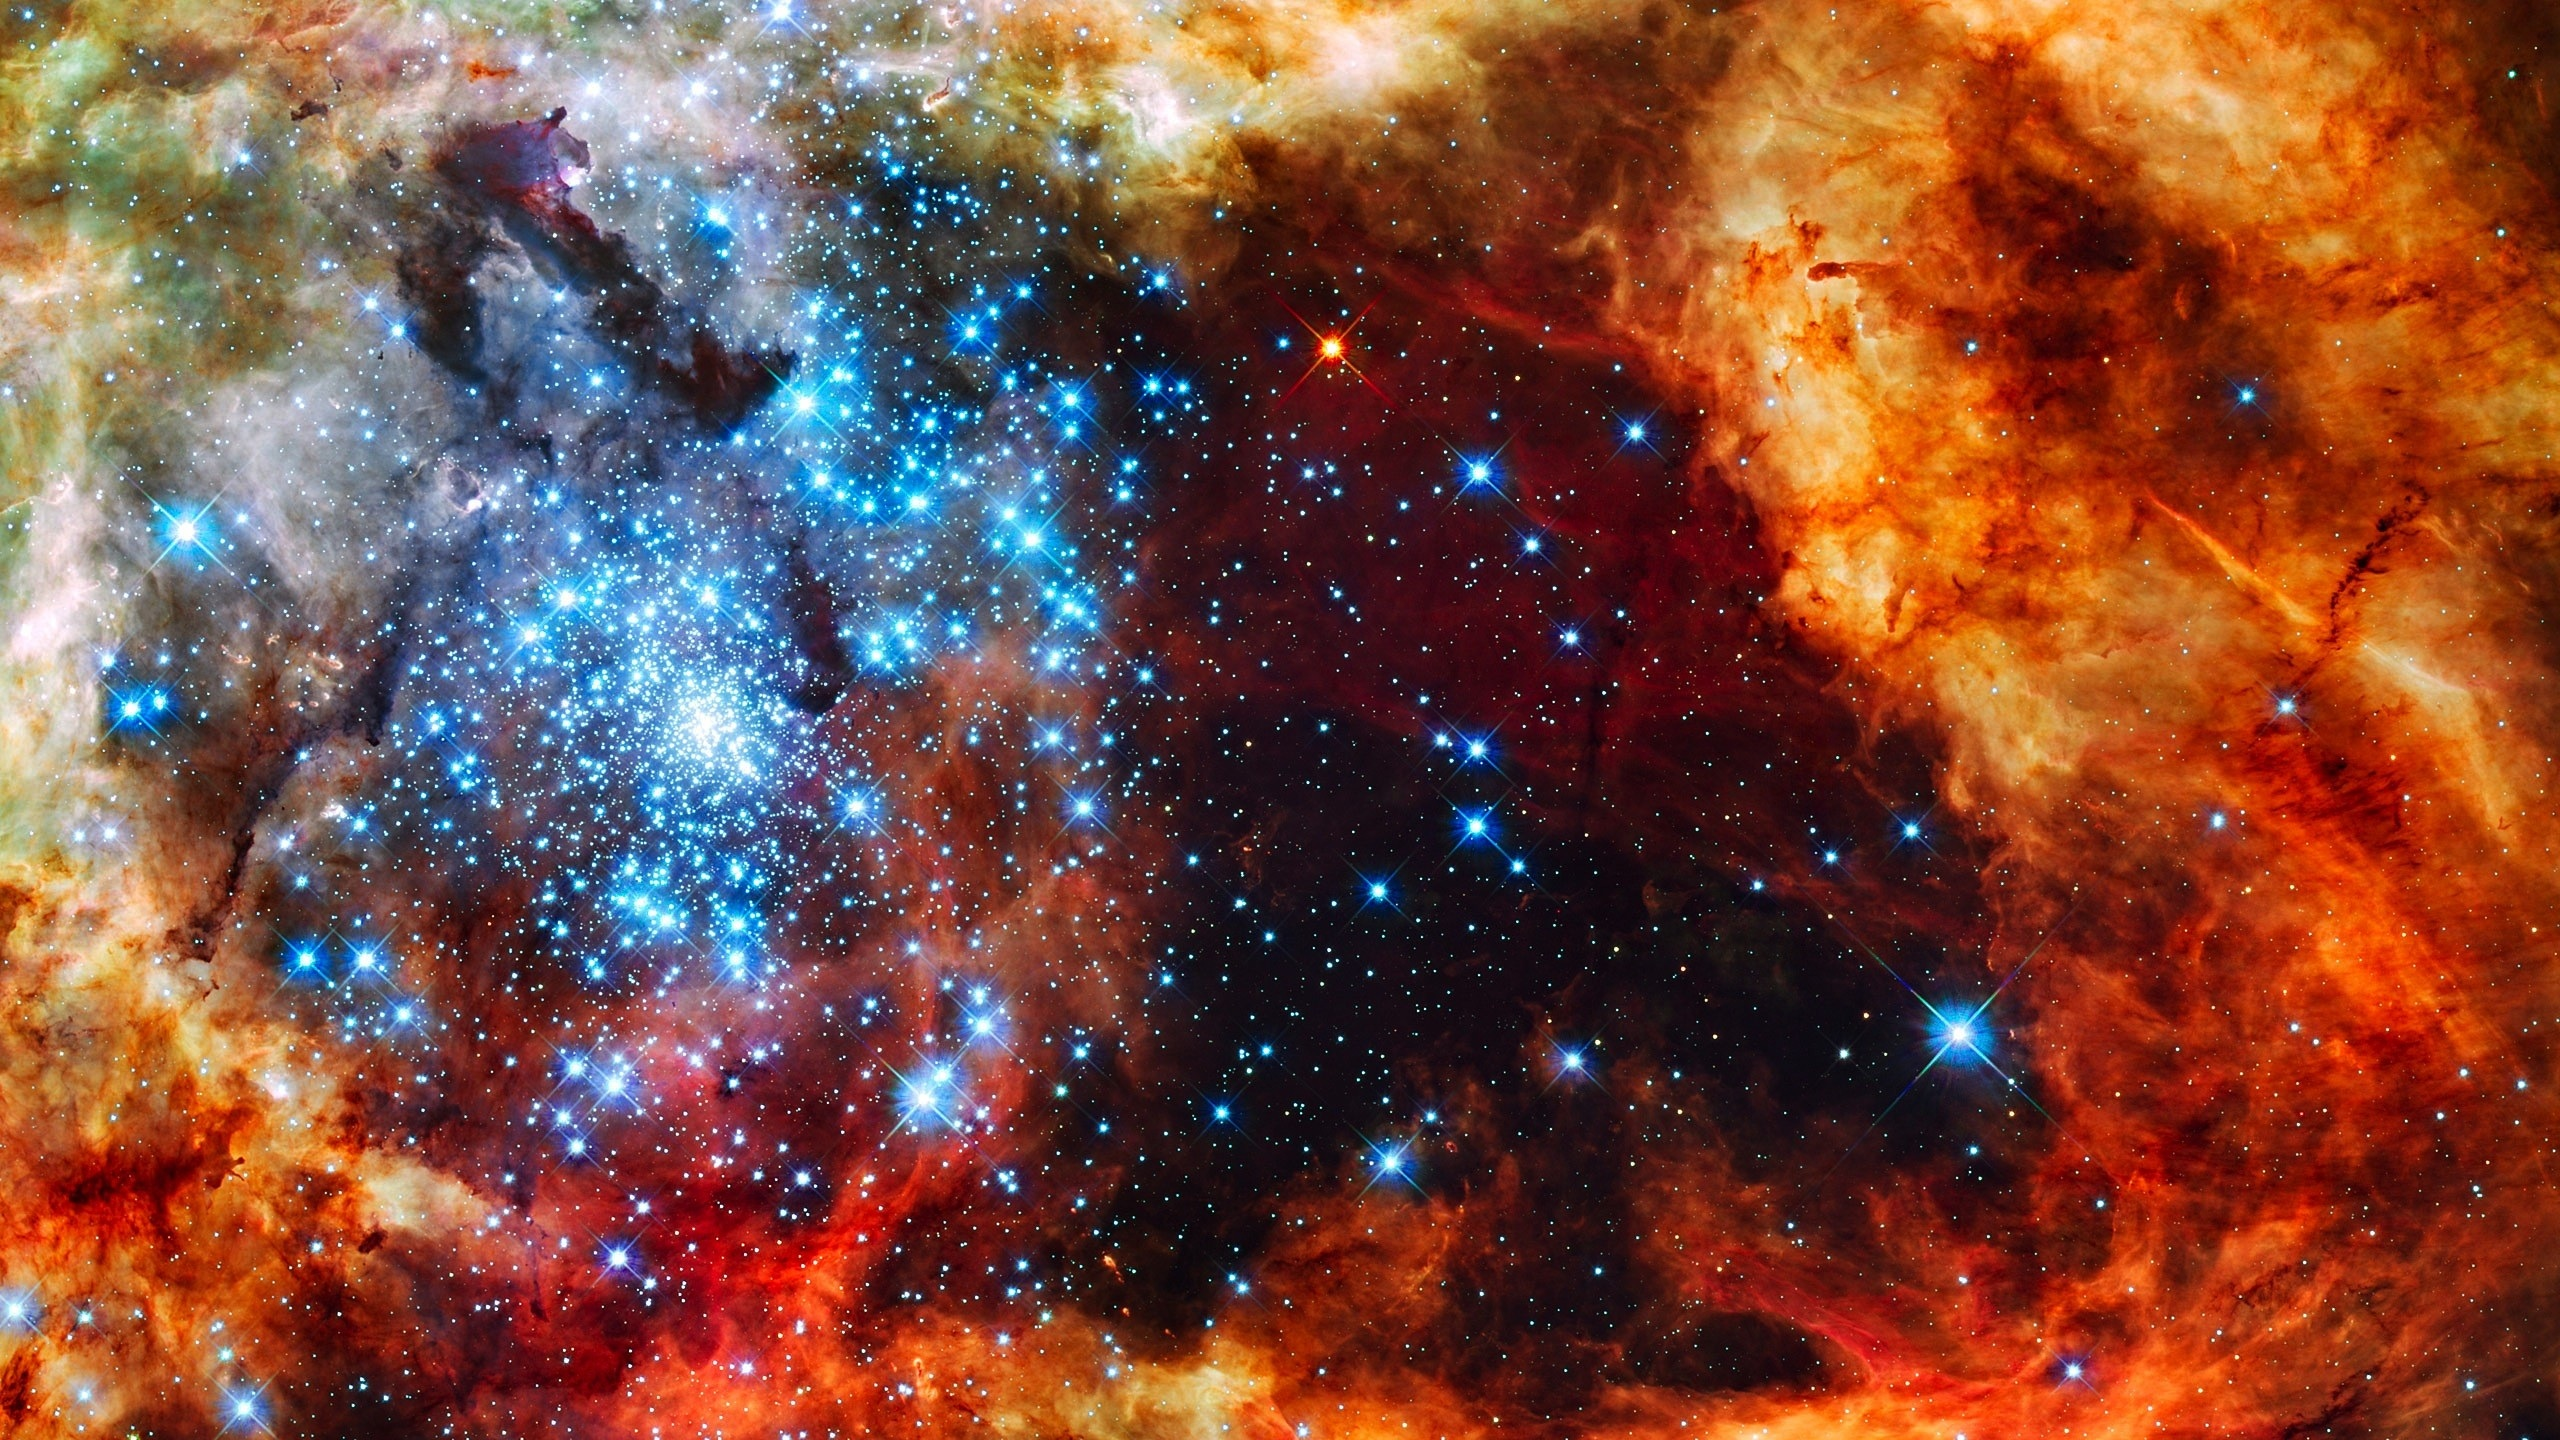 Wallpaper starry space 2560x1440 qhd picture image for Sfondi 2560x1440